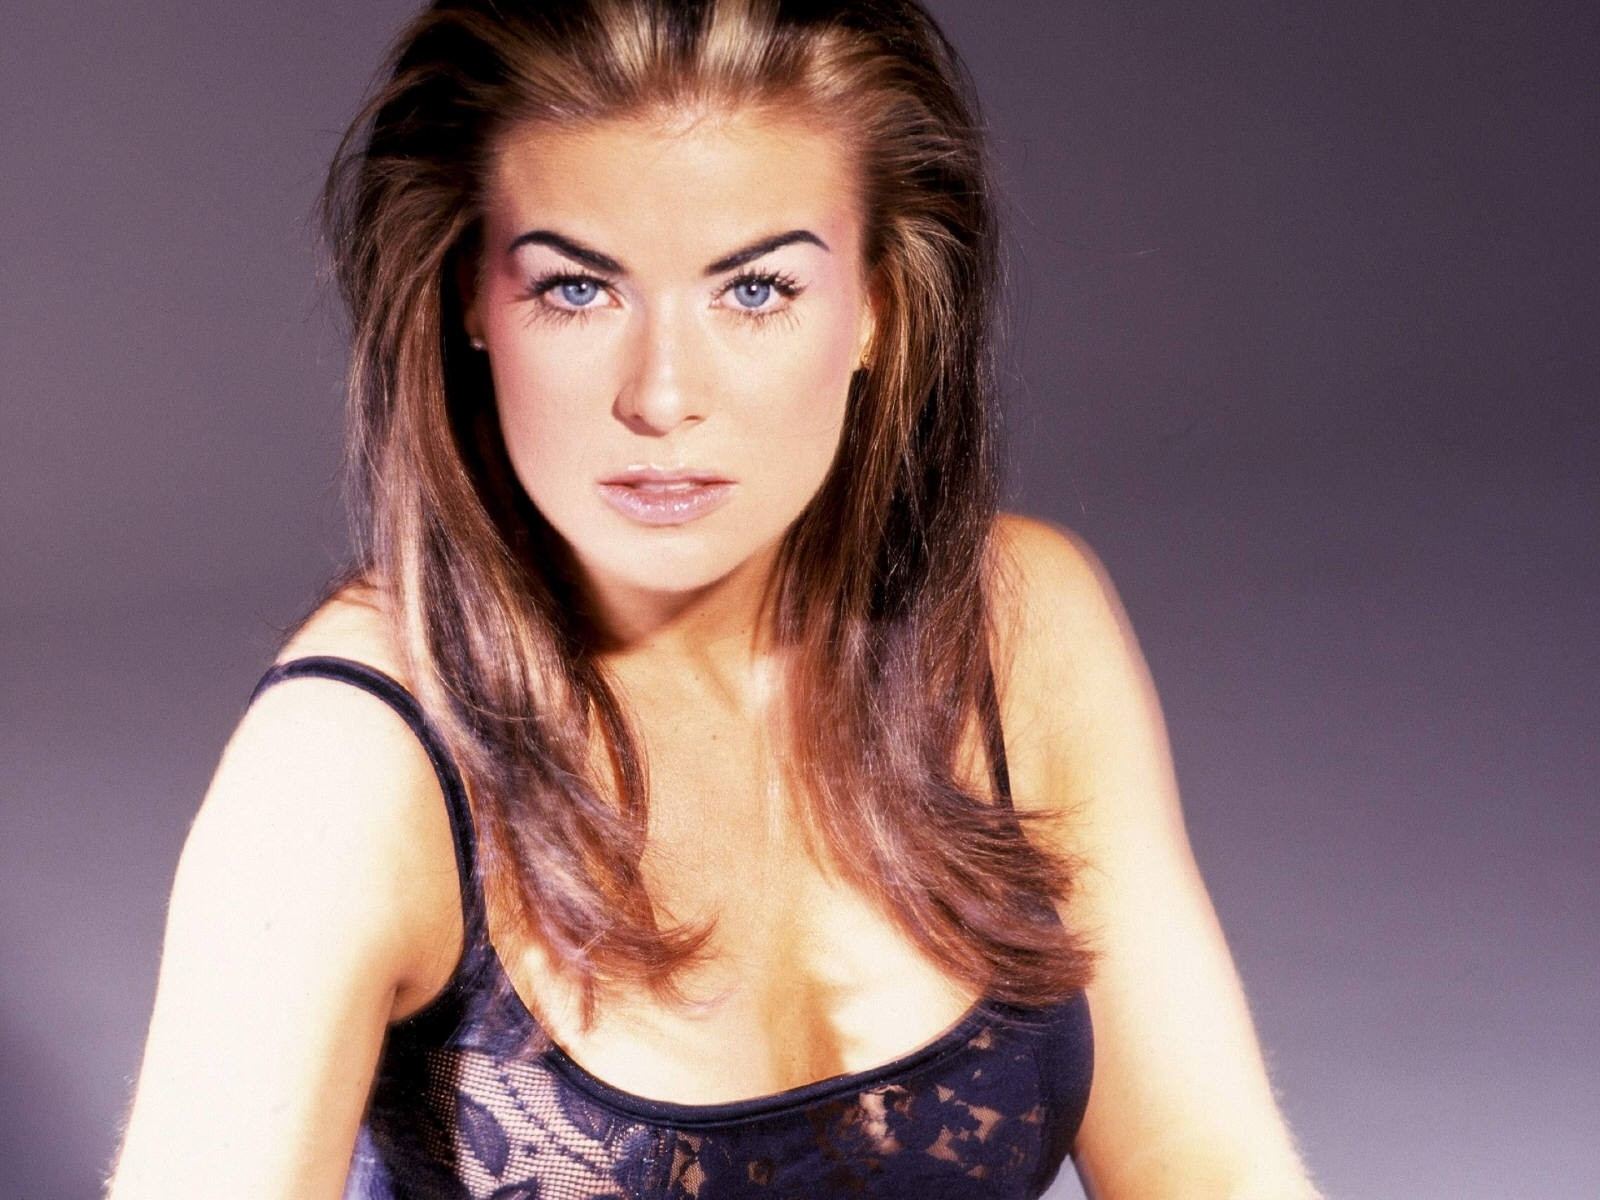 Wallpaper di Carmen Electra